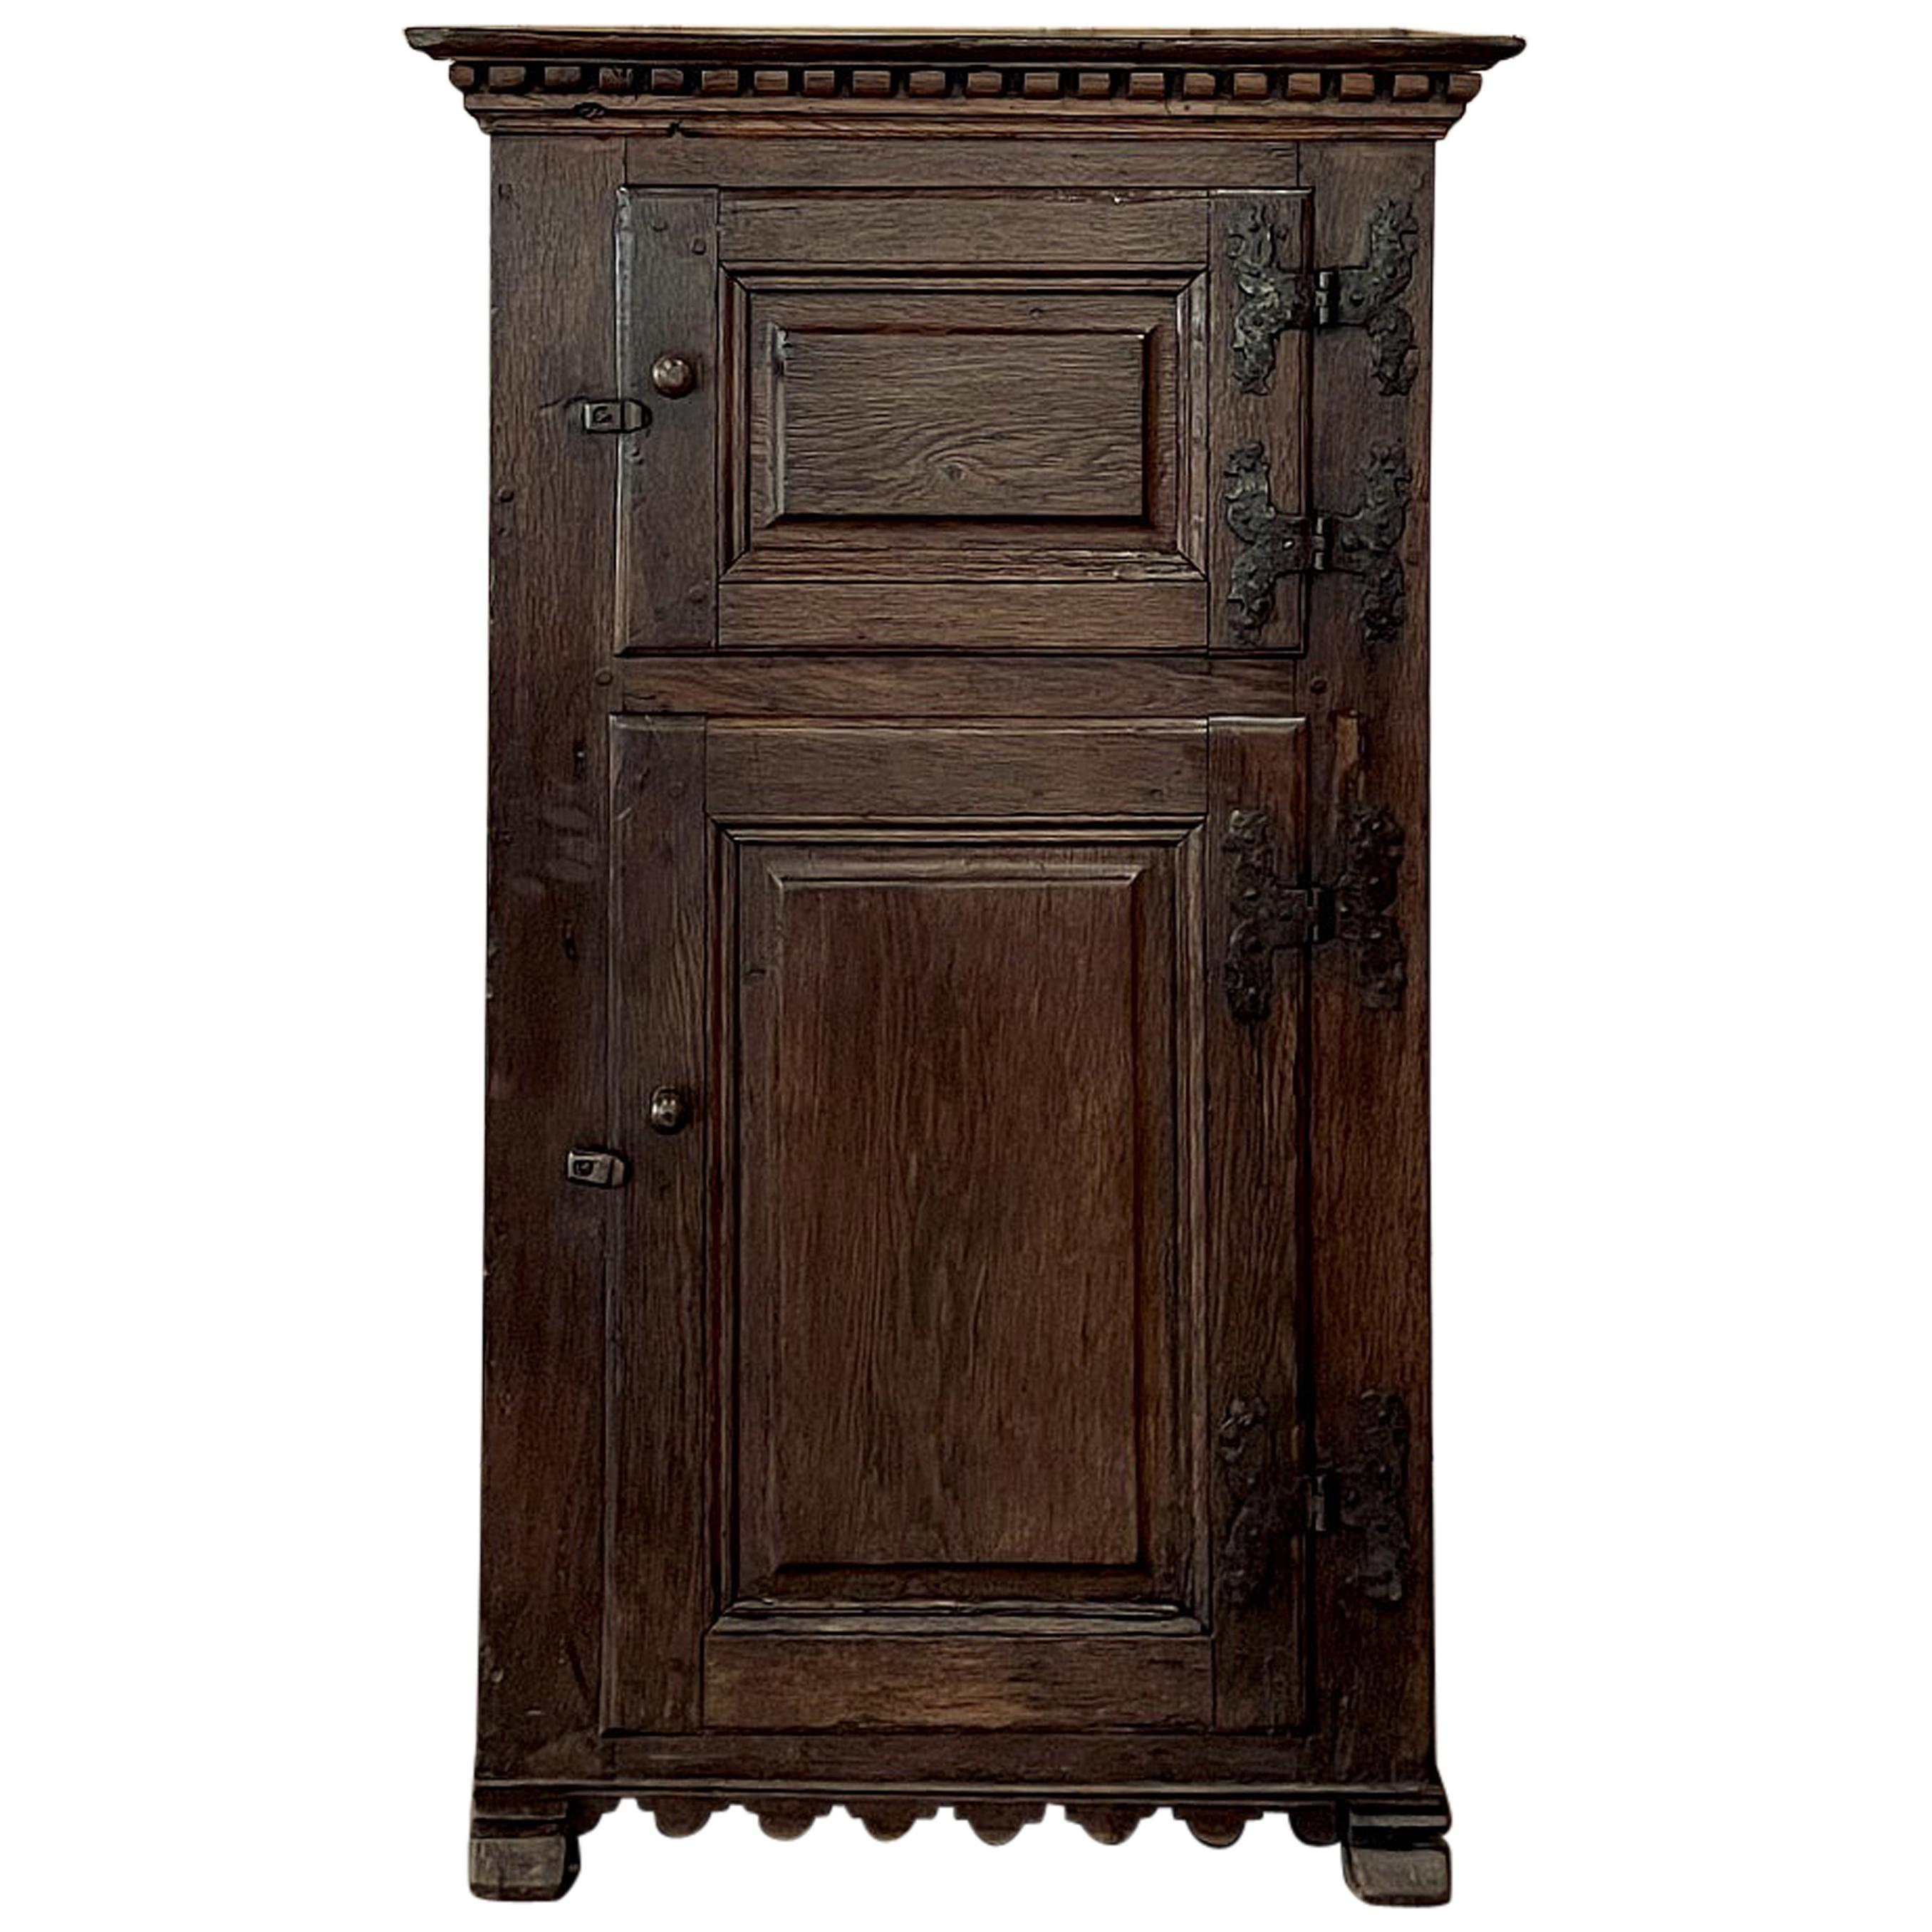 Early 19th Century Rustic Dutch Cabinet